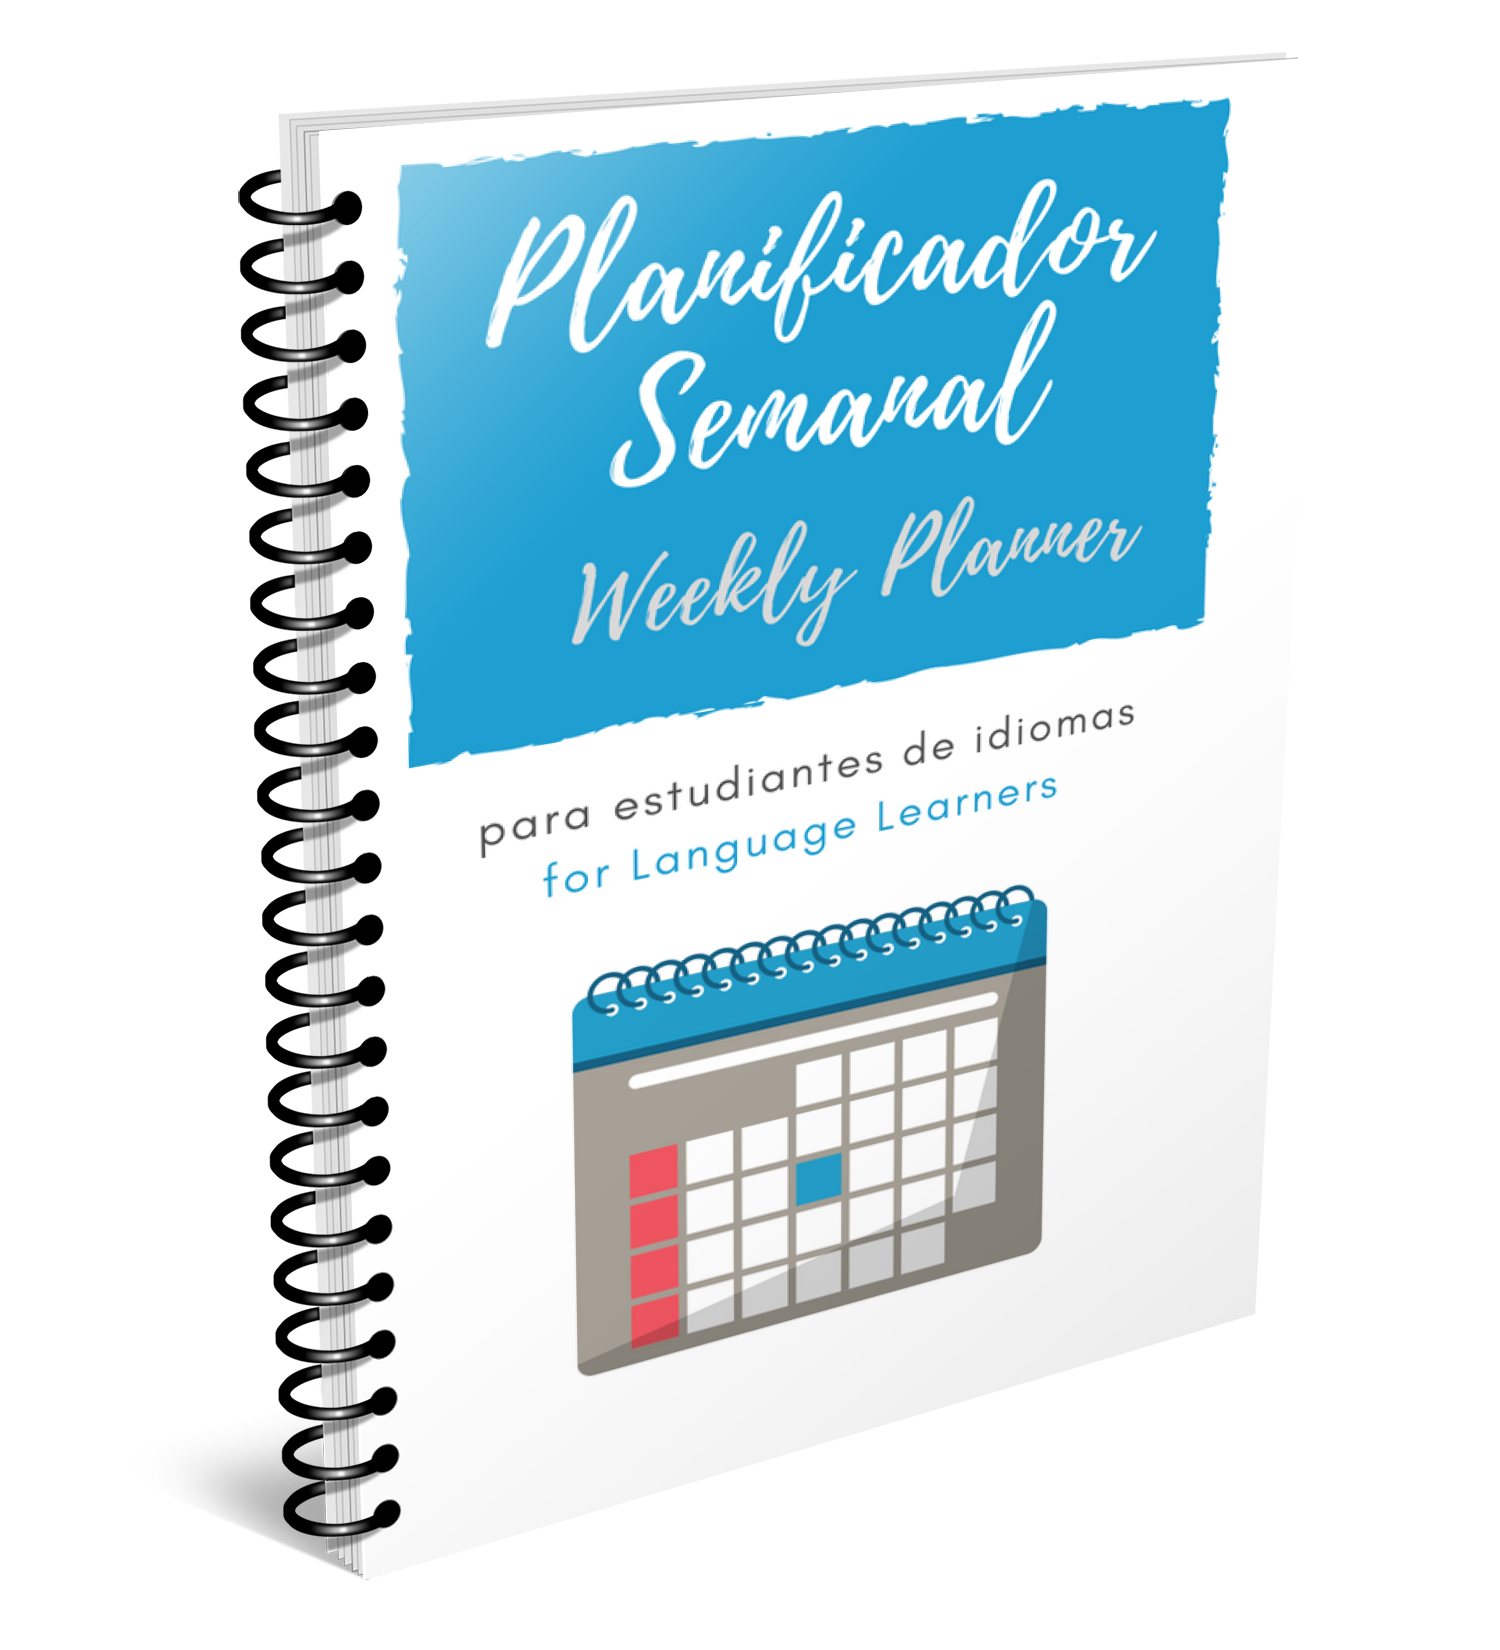 Weekly Planner for Spanish Language Learners